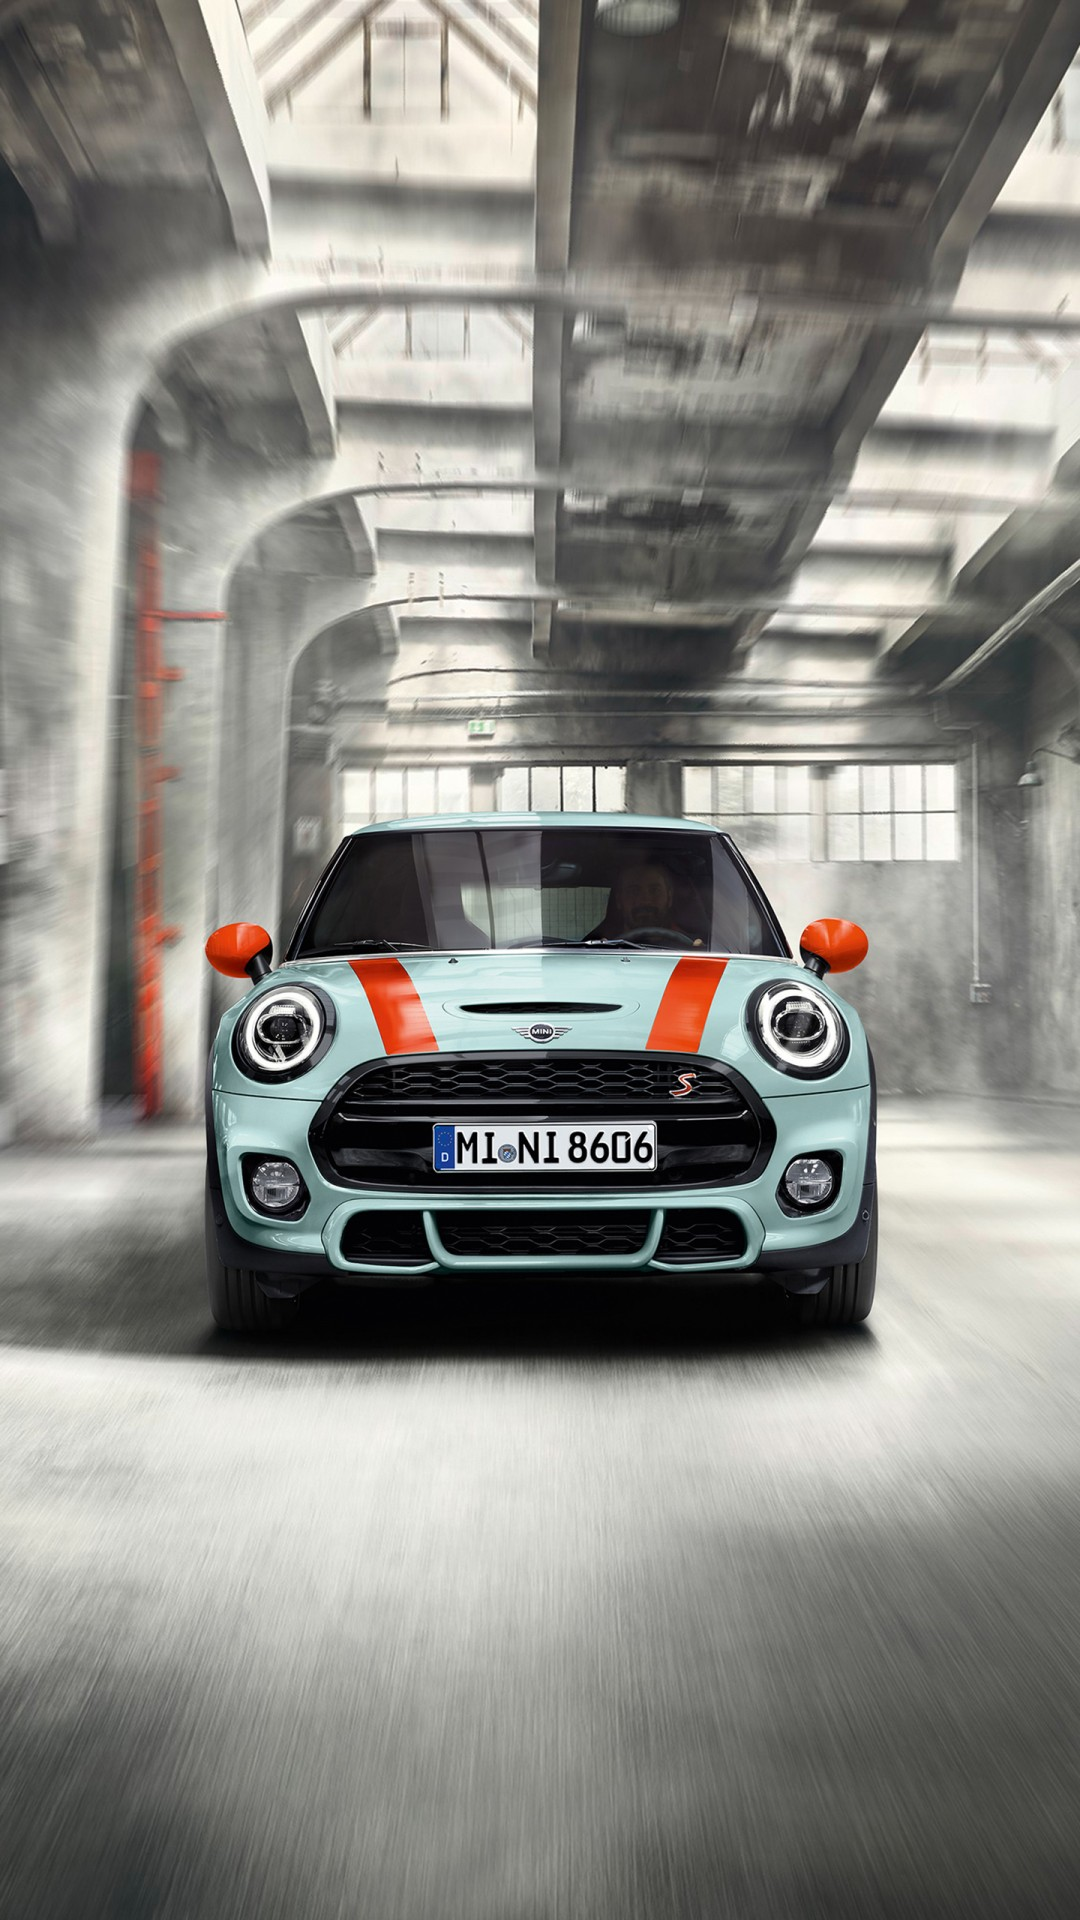 Mini Cooper Hd Wallpaper For Mobile Posted By Christopher Peltier